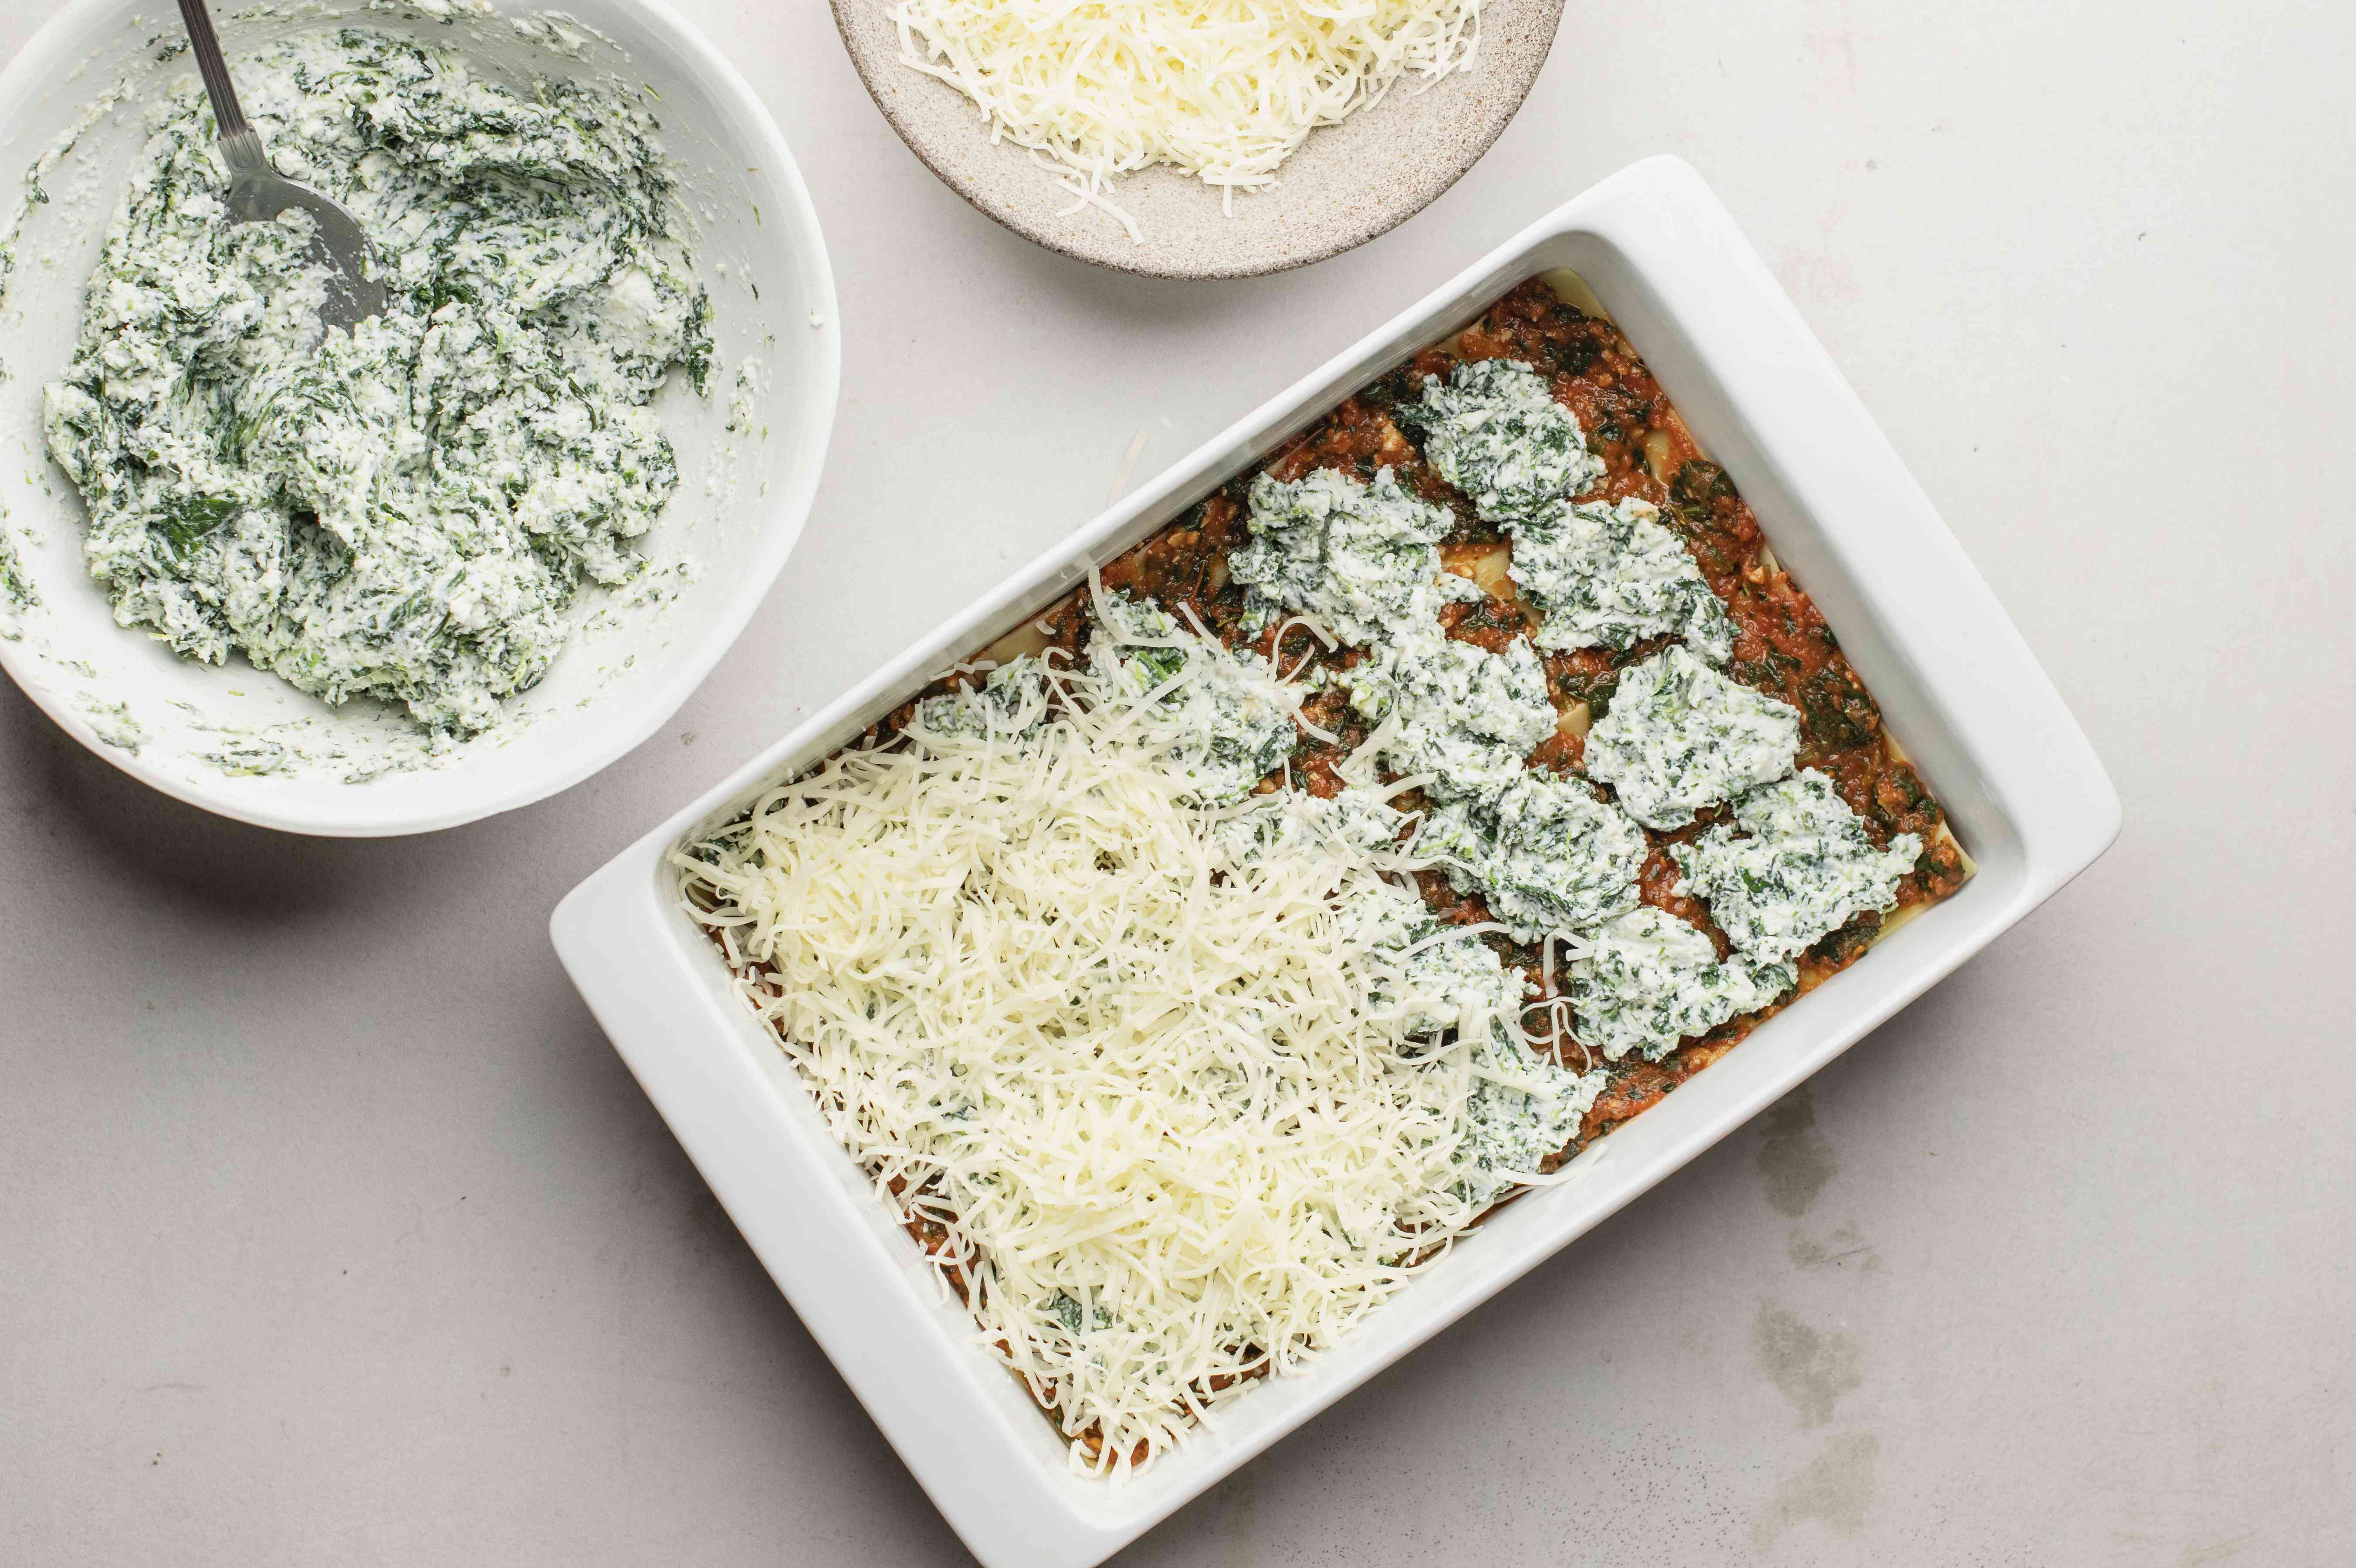 About one-third of the ricotta mixture over the sauce layer for spinach lasagna